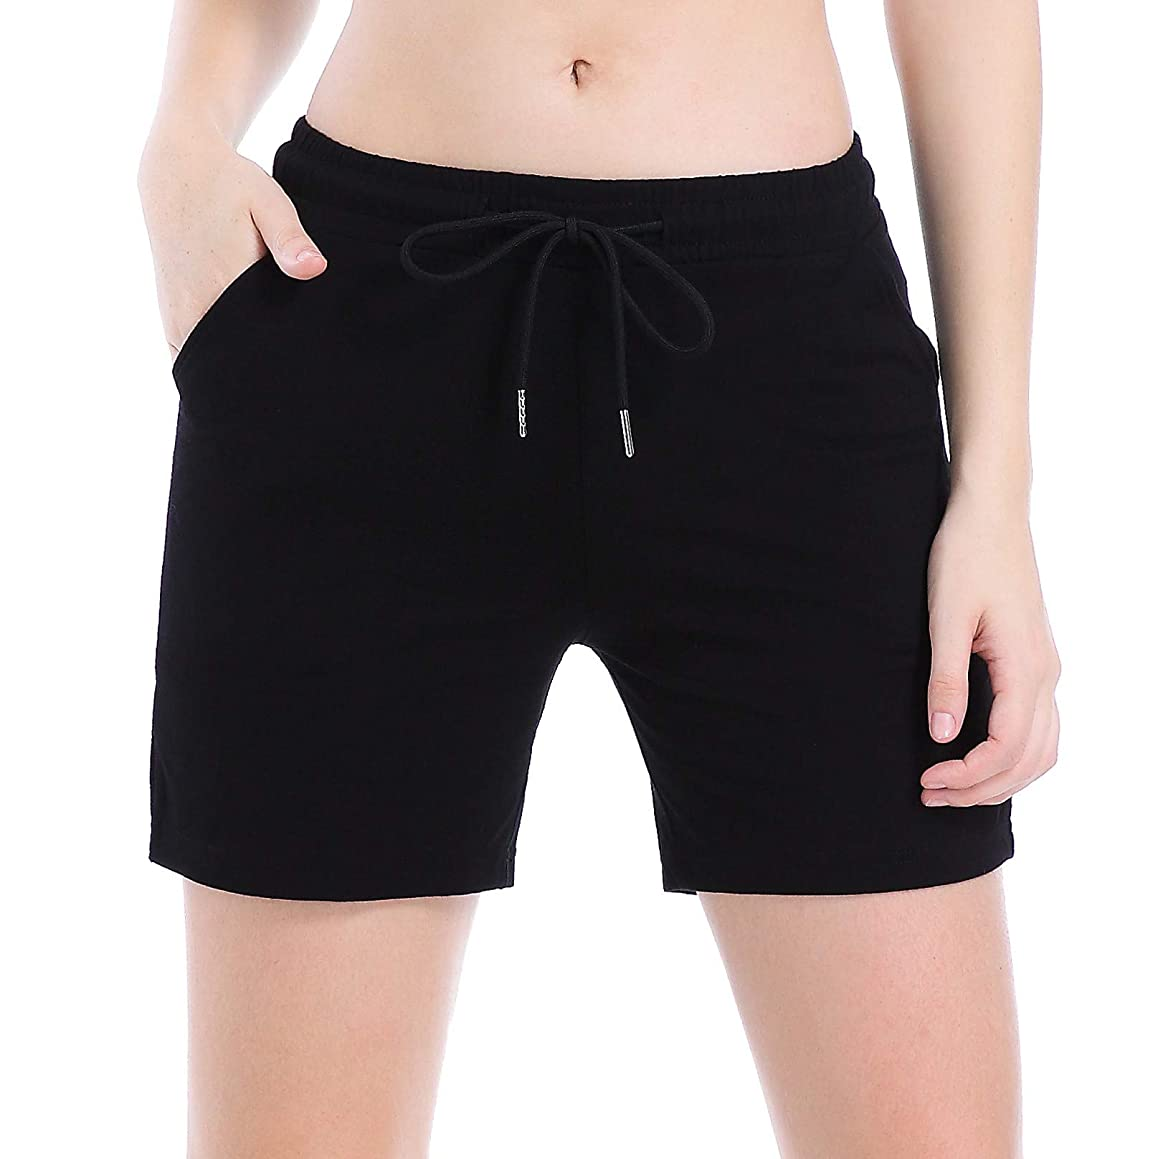 Ferrieswheel Story Women Lounge Active Sport Shorts Light Short Yoga Pants with Pockets Workout